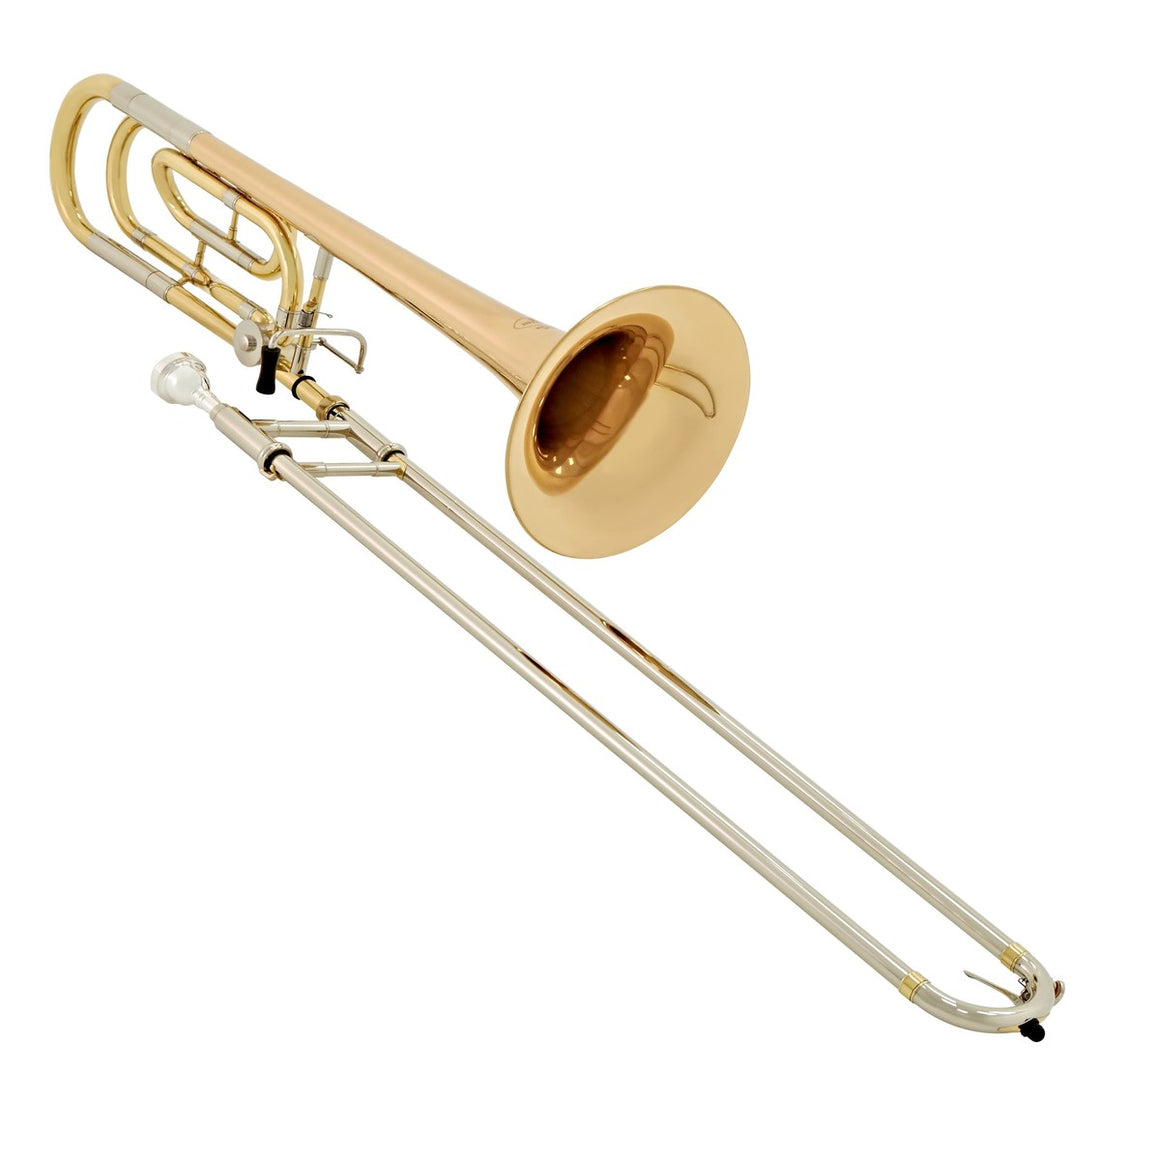 Besson BE144G-1-0 trombone